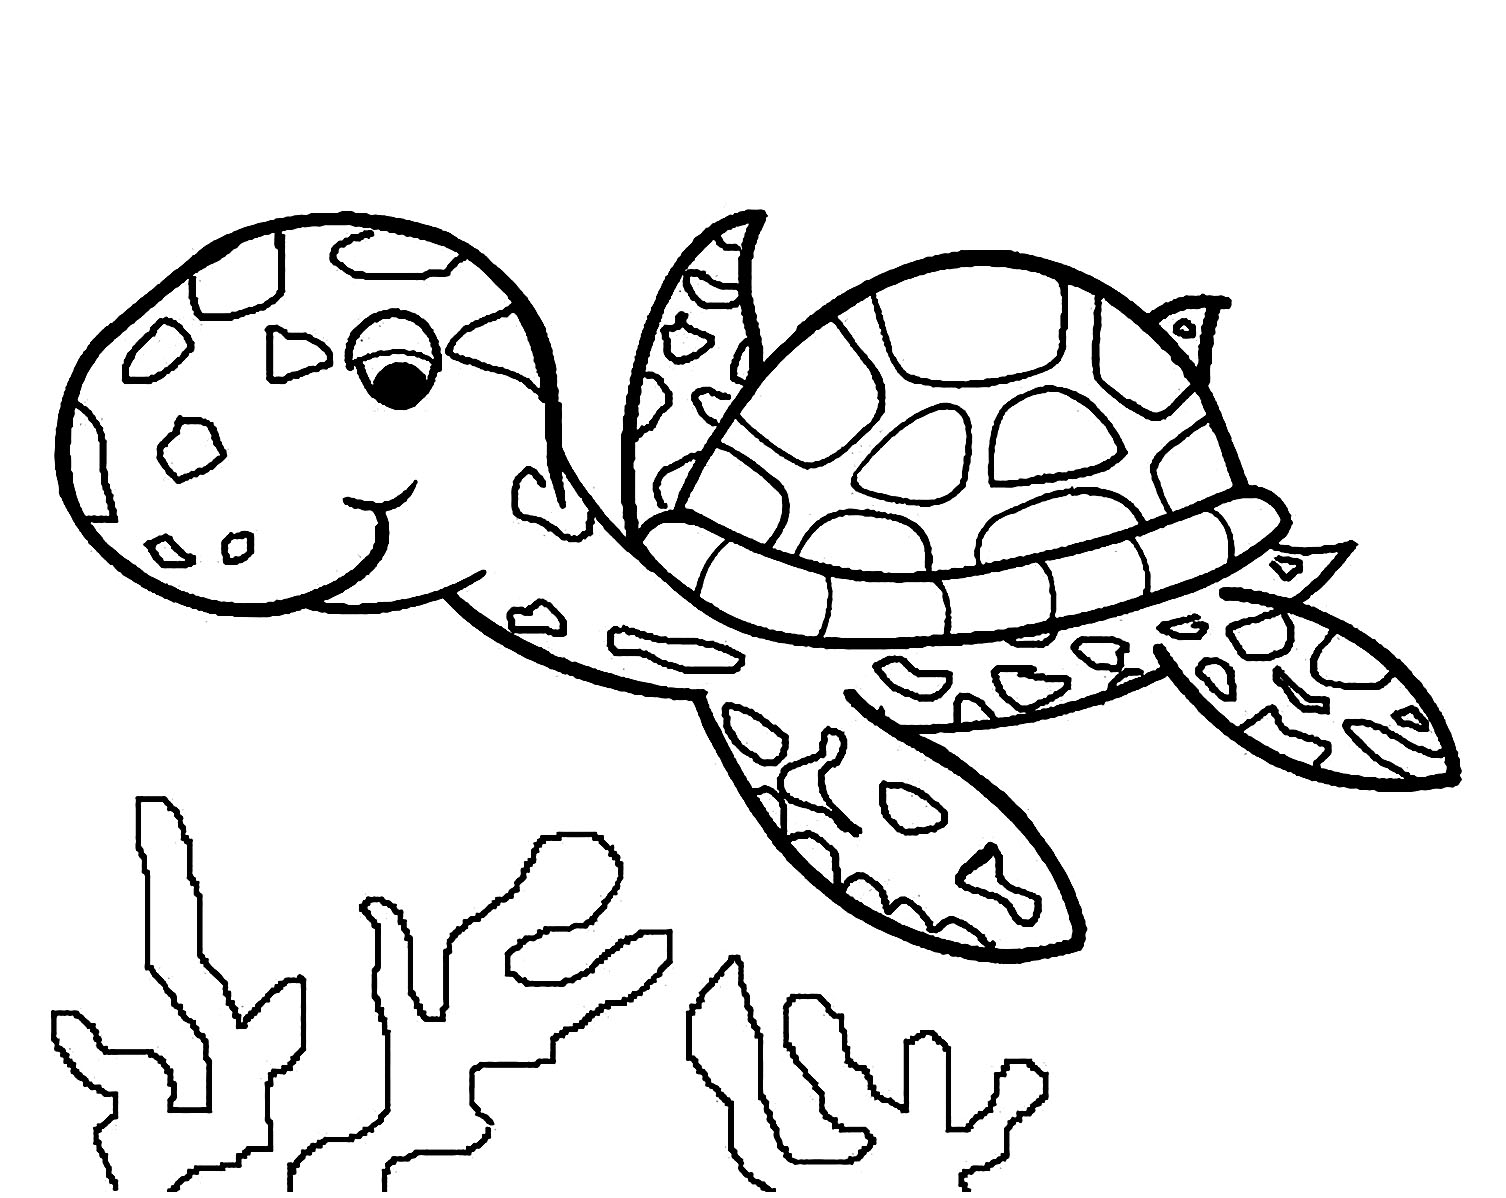 turtle coloring pictures sea turtle line drawing at getdrawings free download coloring turtle pictures